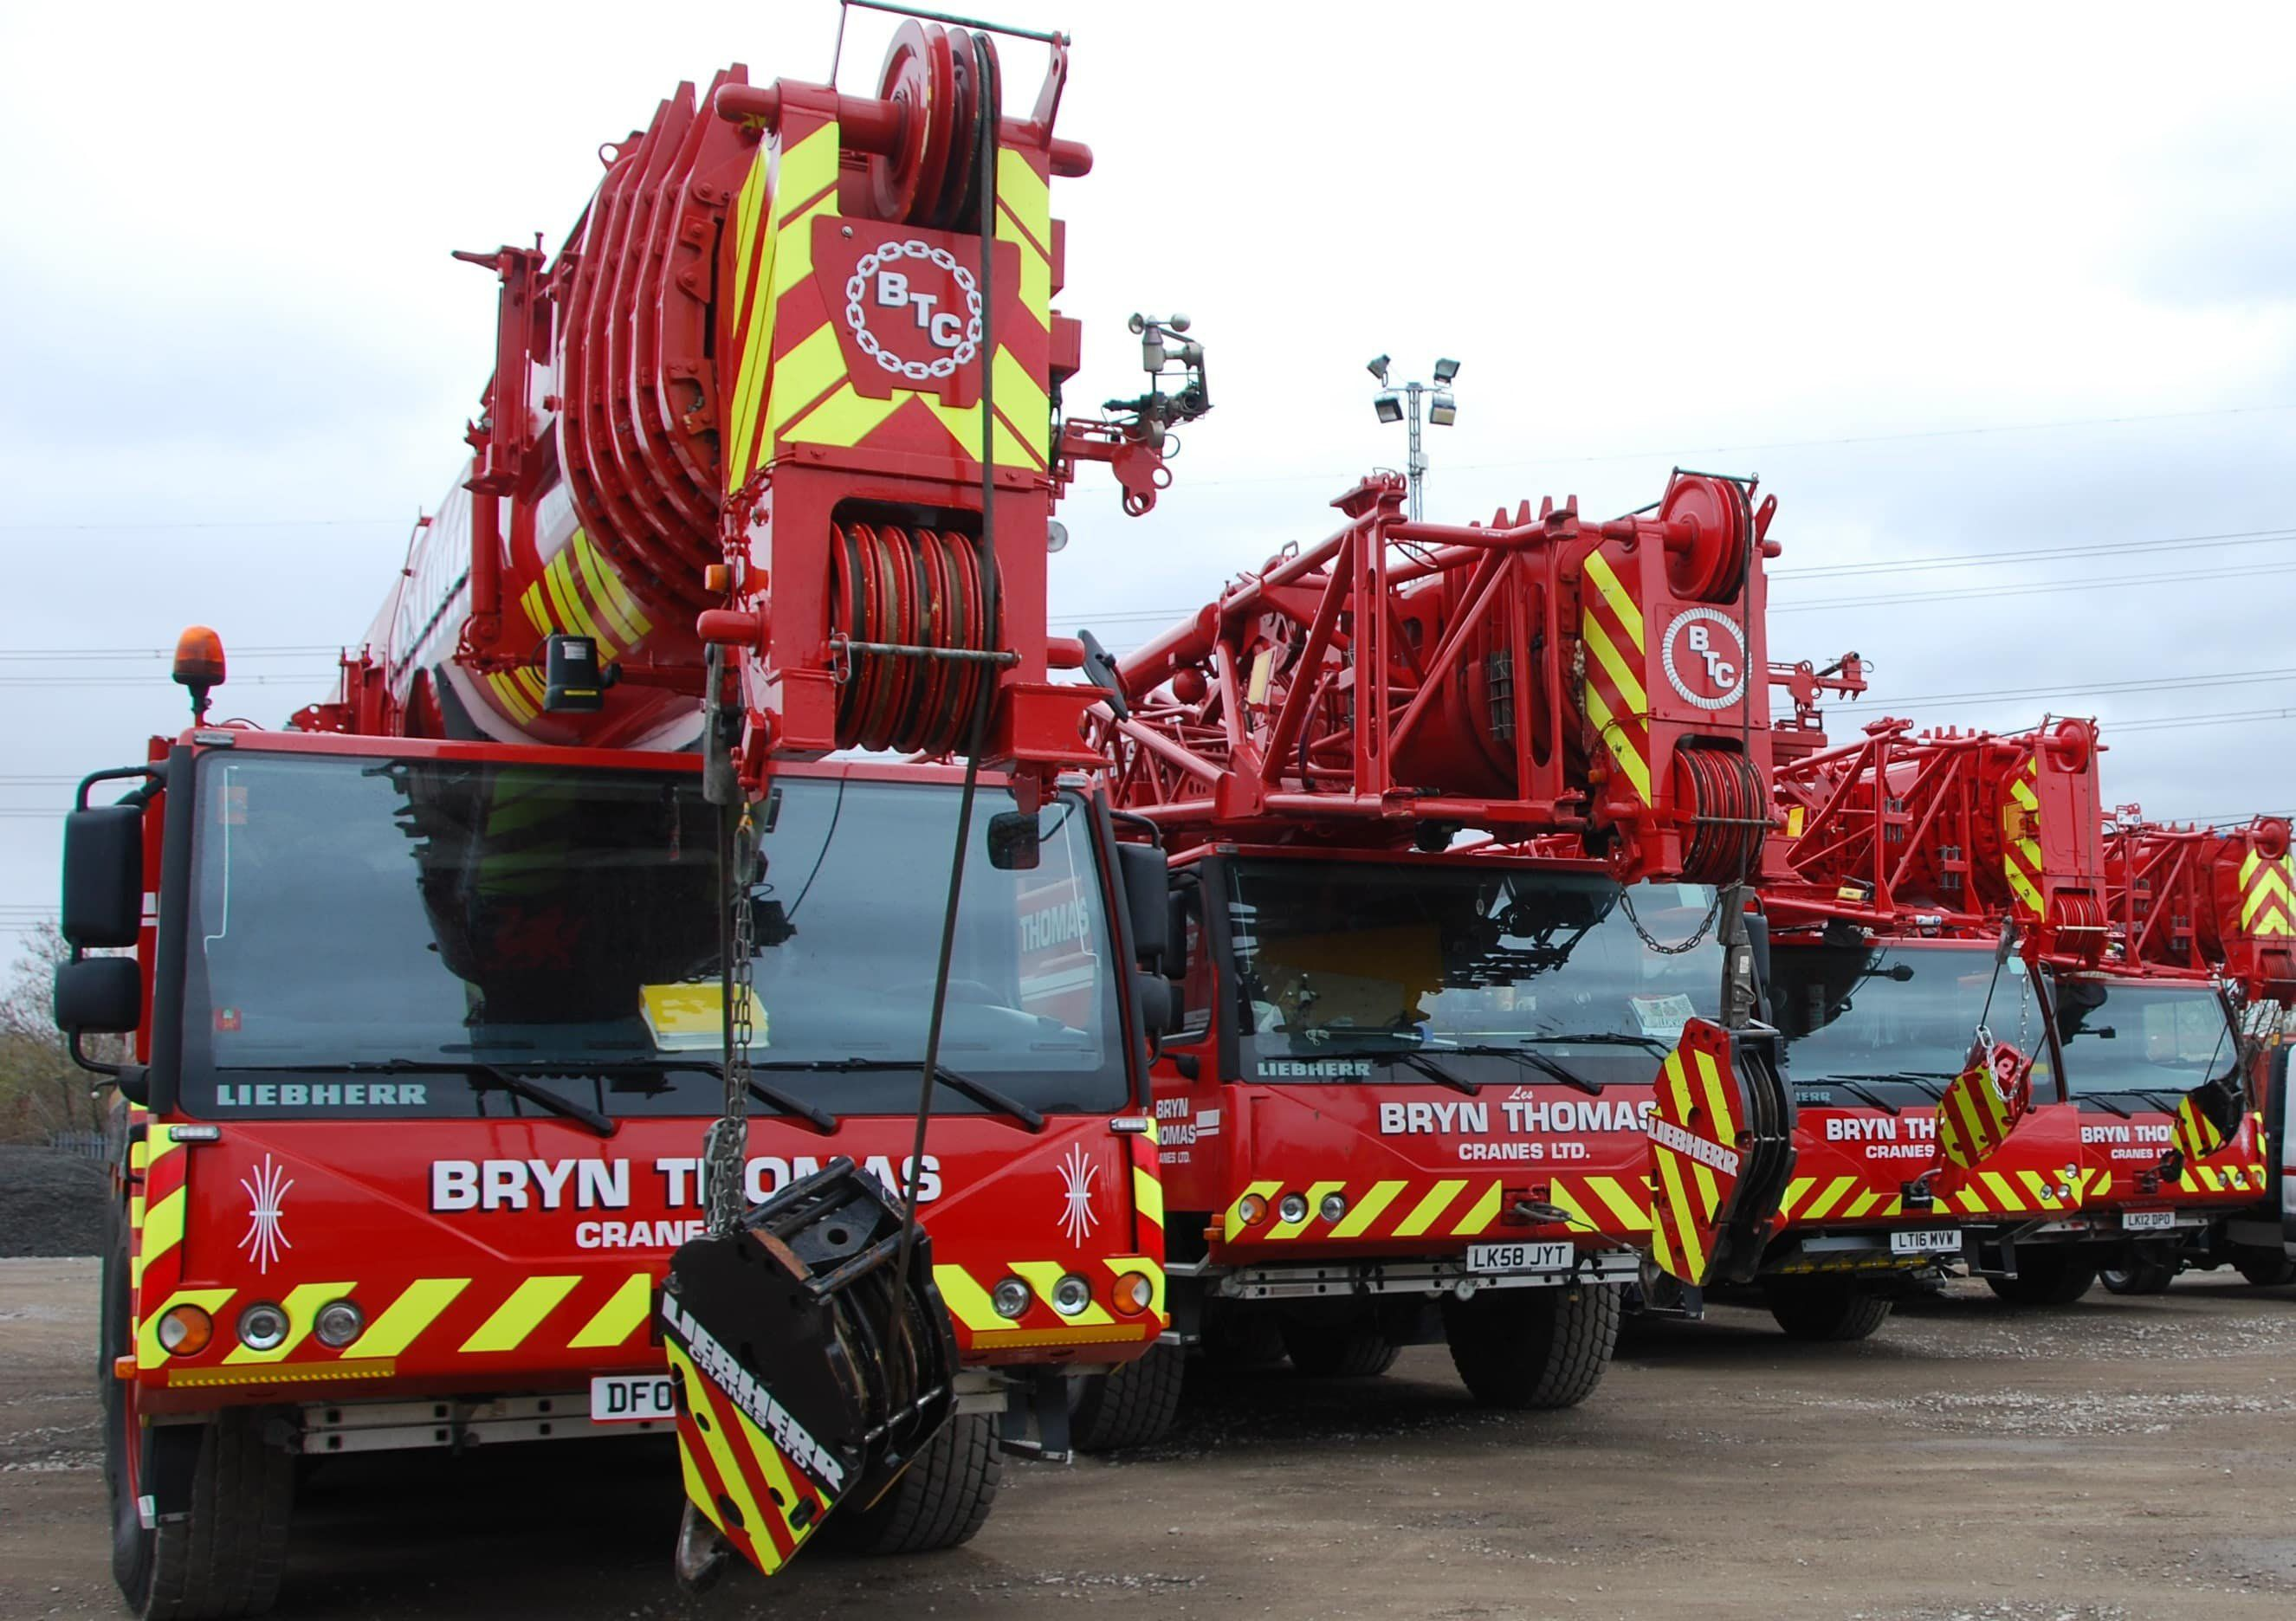 Crane Hire, Crane Hiring & Lifting Services – Bryn Thomas Cranes